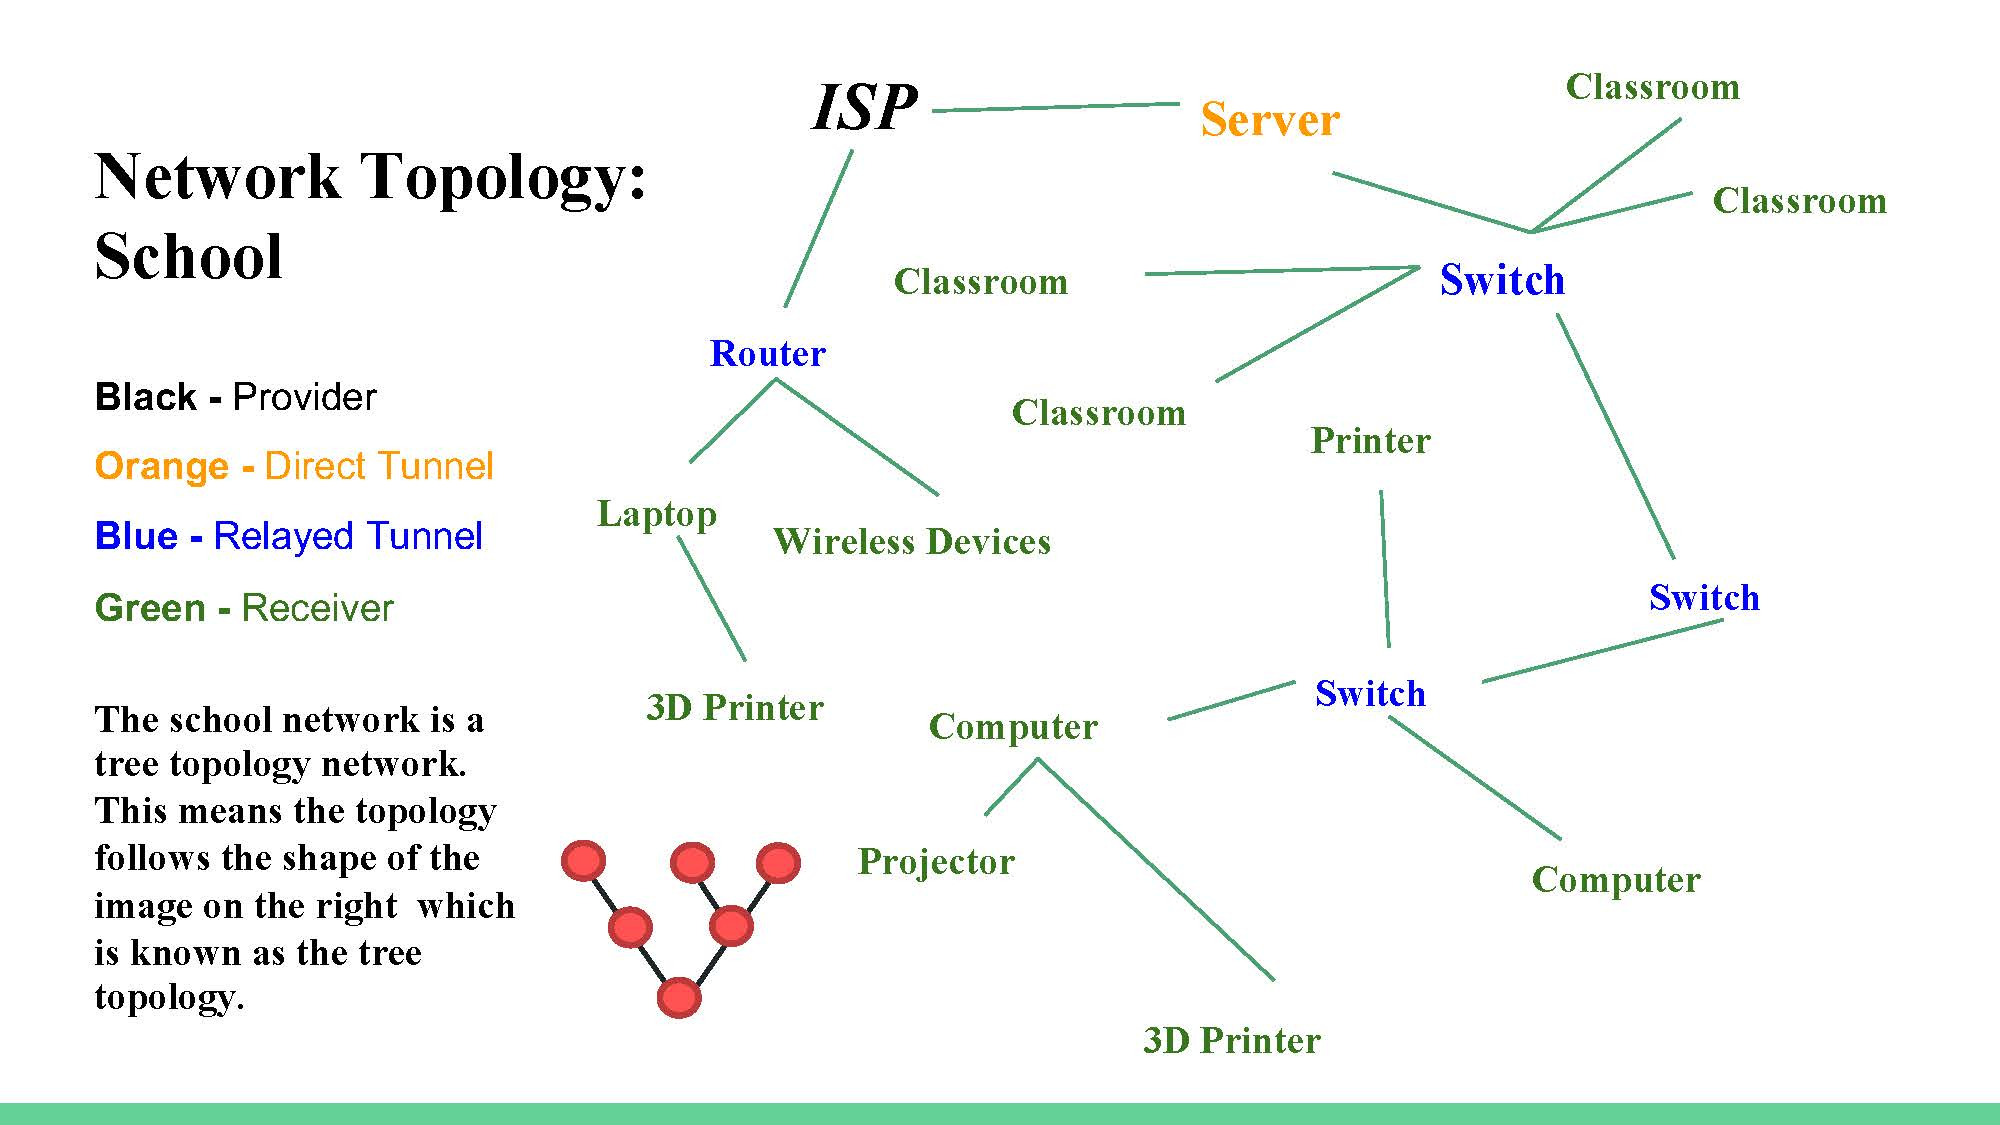 hight resolution of creates a diagram to illustrate the topology of the school network showing the interactions between different hardware components